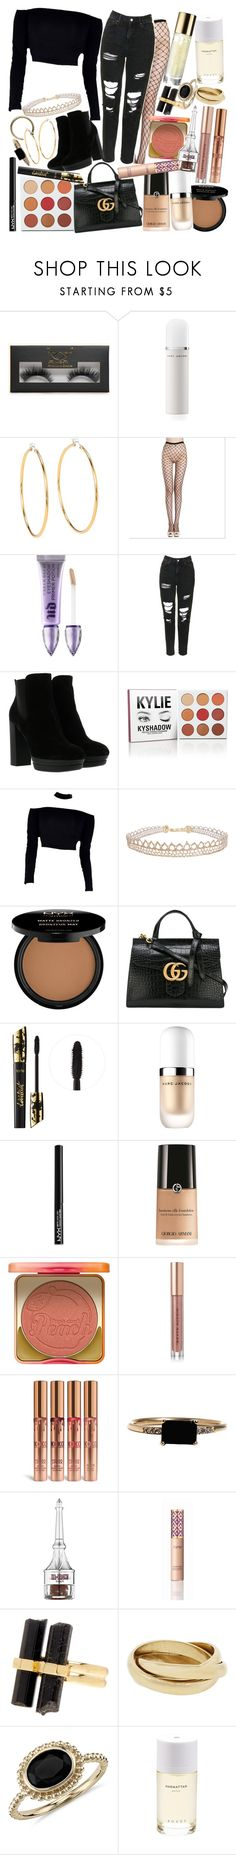 """Love is just another four letter word, but that never stopped nobody"" by thelyricsmatter ❤ liked on Polyvore featuring Boohoo, Marc Jacobs, Juicy Couture, Urban Decay, Topshop, Hogan, Humble Chic, NYX, Gucci and tarte"